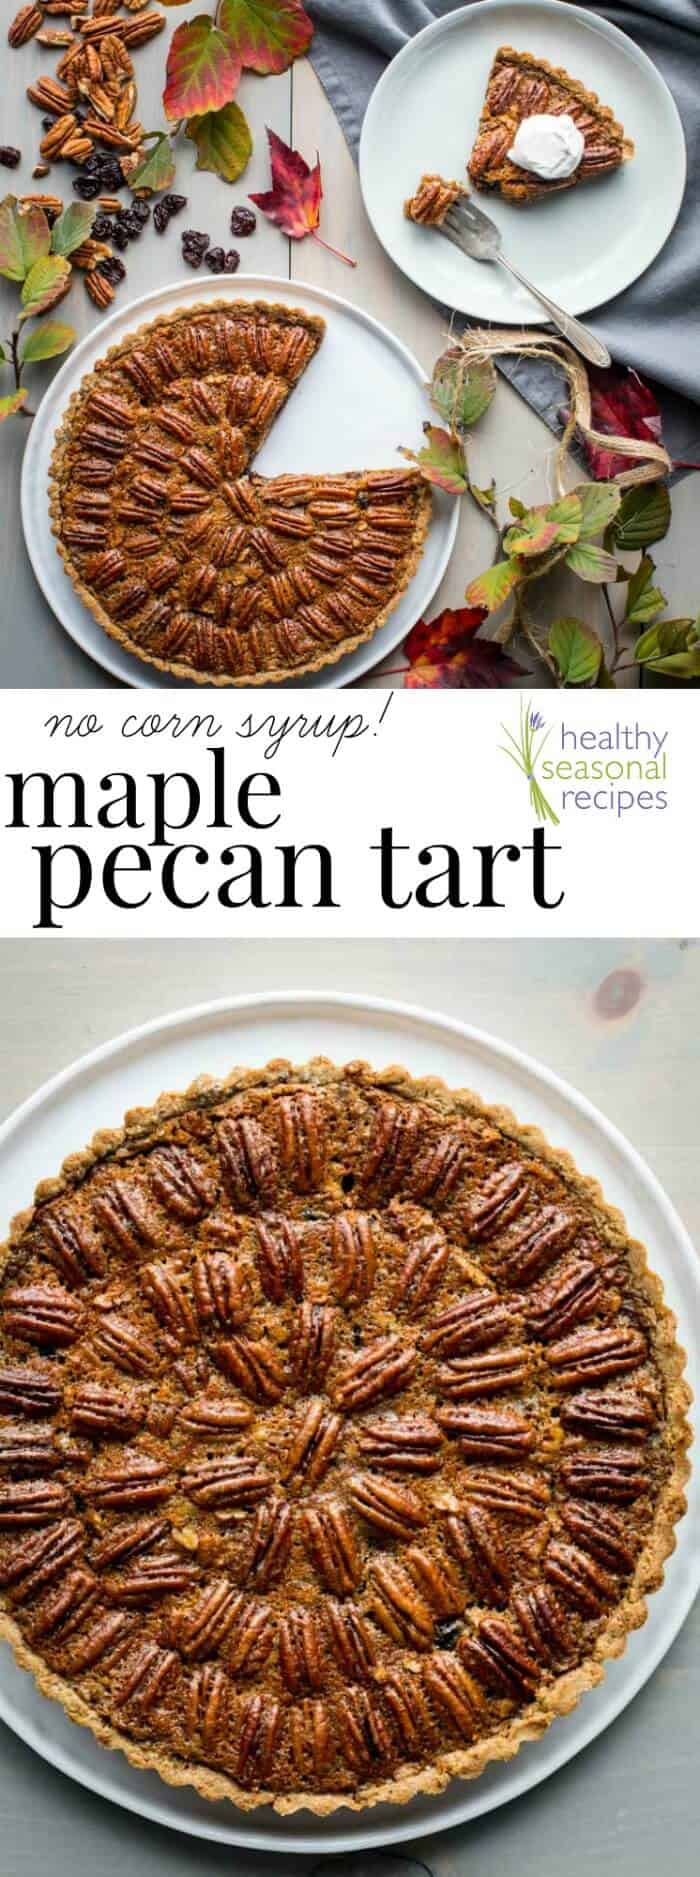 This No Corn Syrup Pecan and Dried Cherry Tart with Maple is a healthy twist on pecan pie for Thanksgiving and the winter holidays. | Healthy Seasonal Recipes | Katie Webster #tart #thanksgiving #holiday #maple #pie #pecanpie